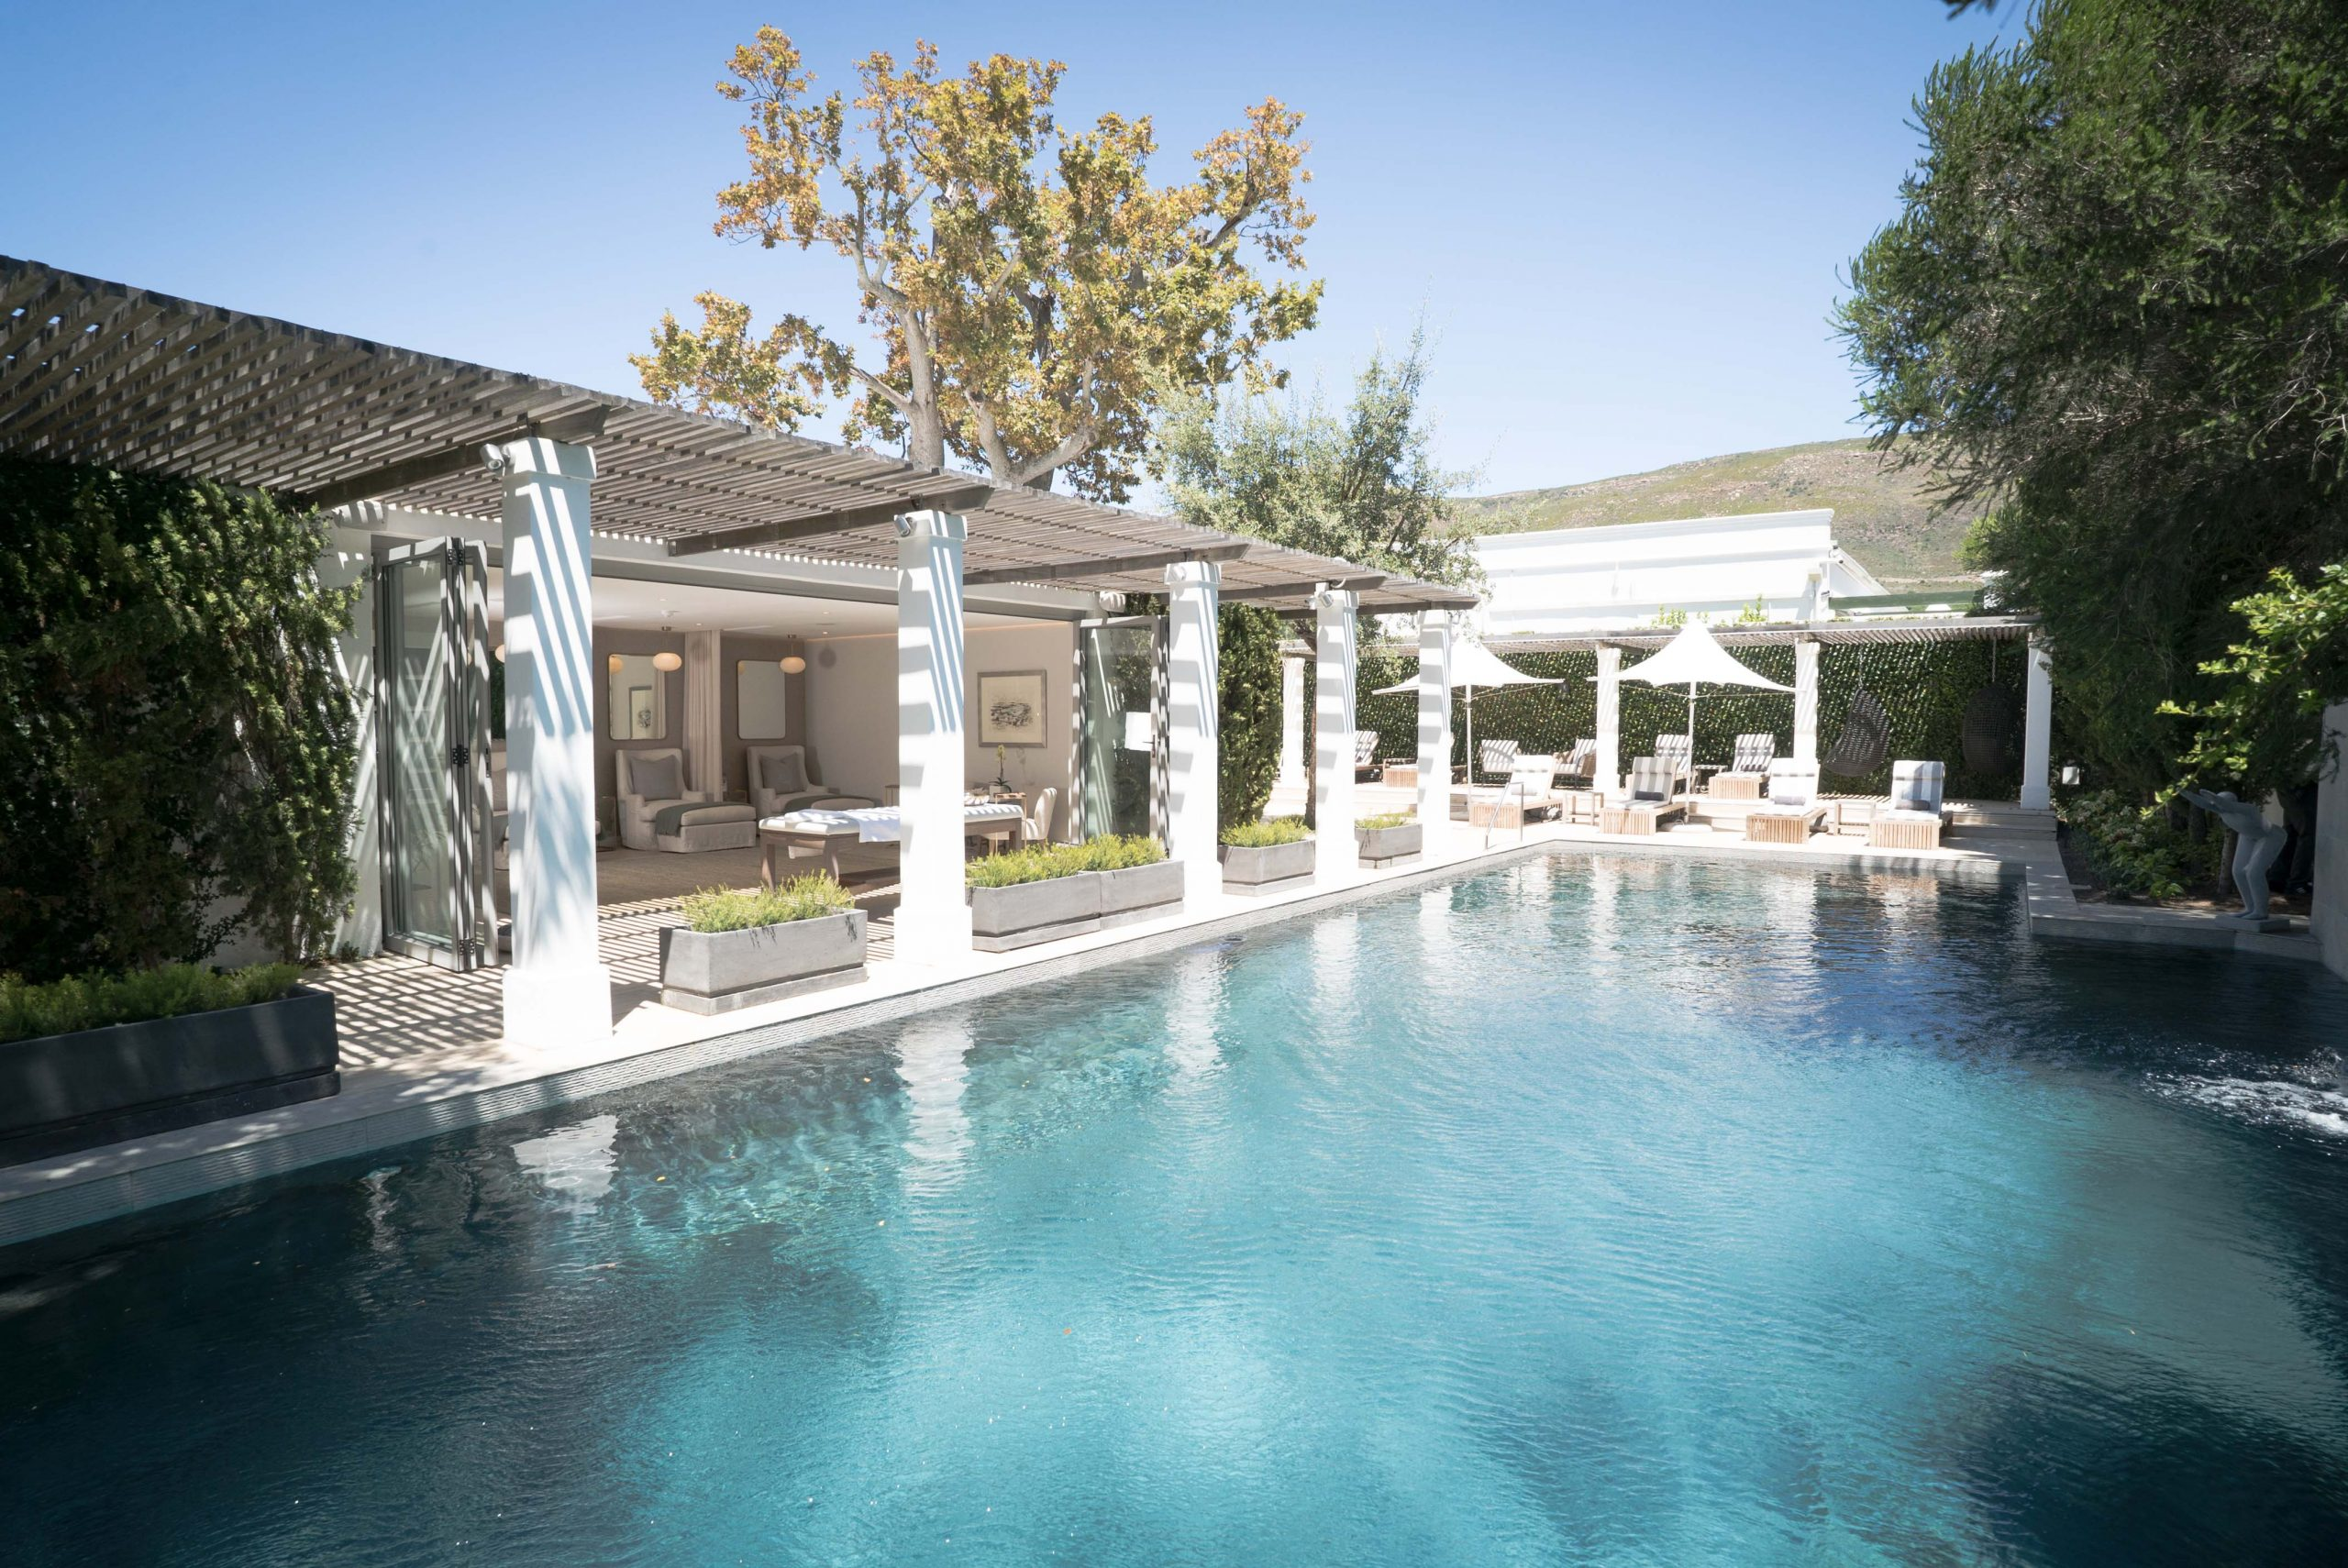 The Relaxation Area and Pool at Steenberg Hotel